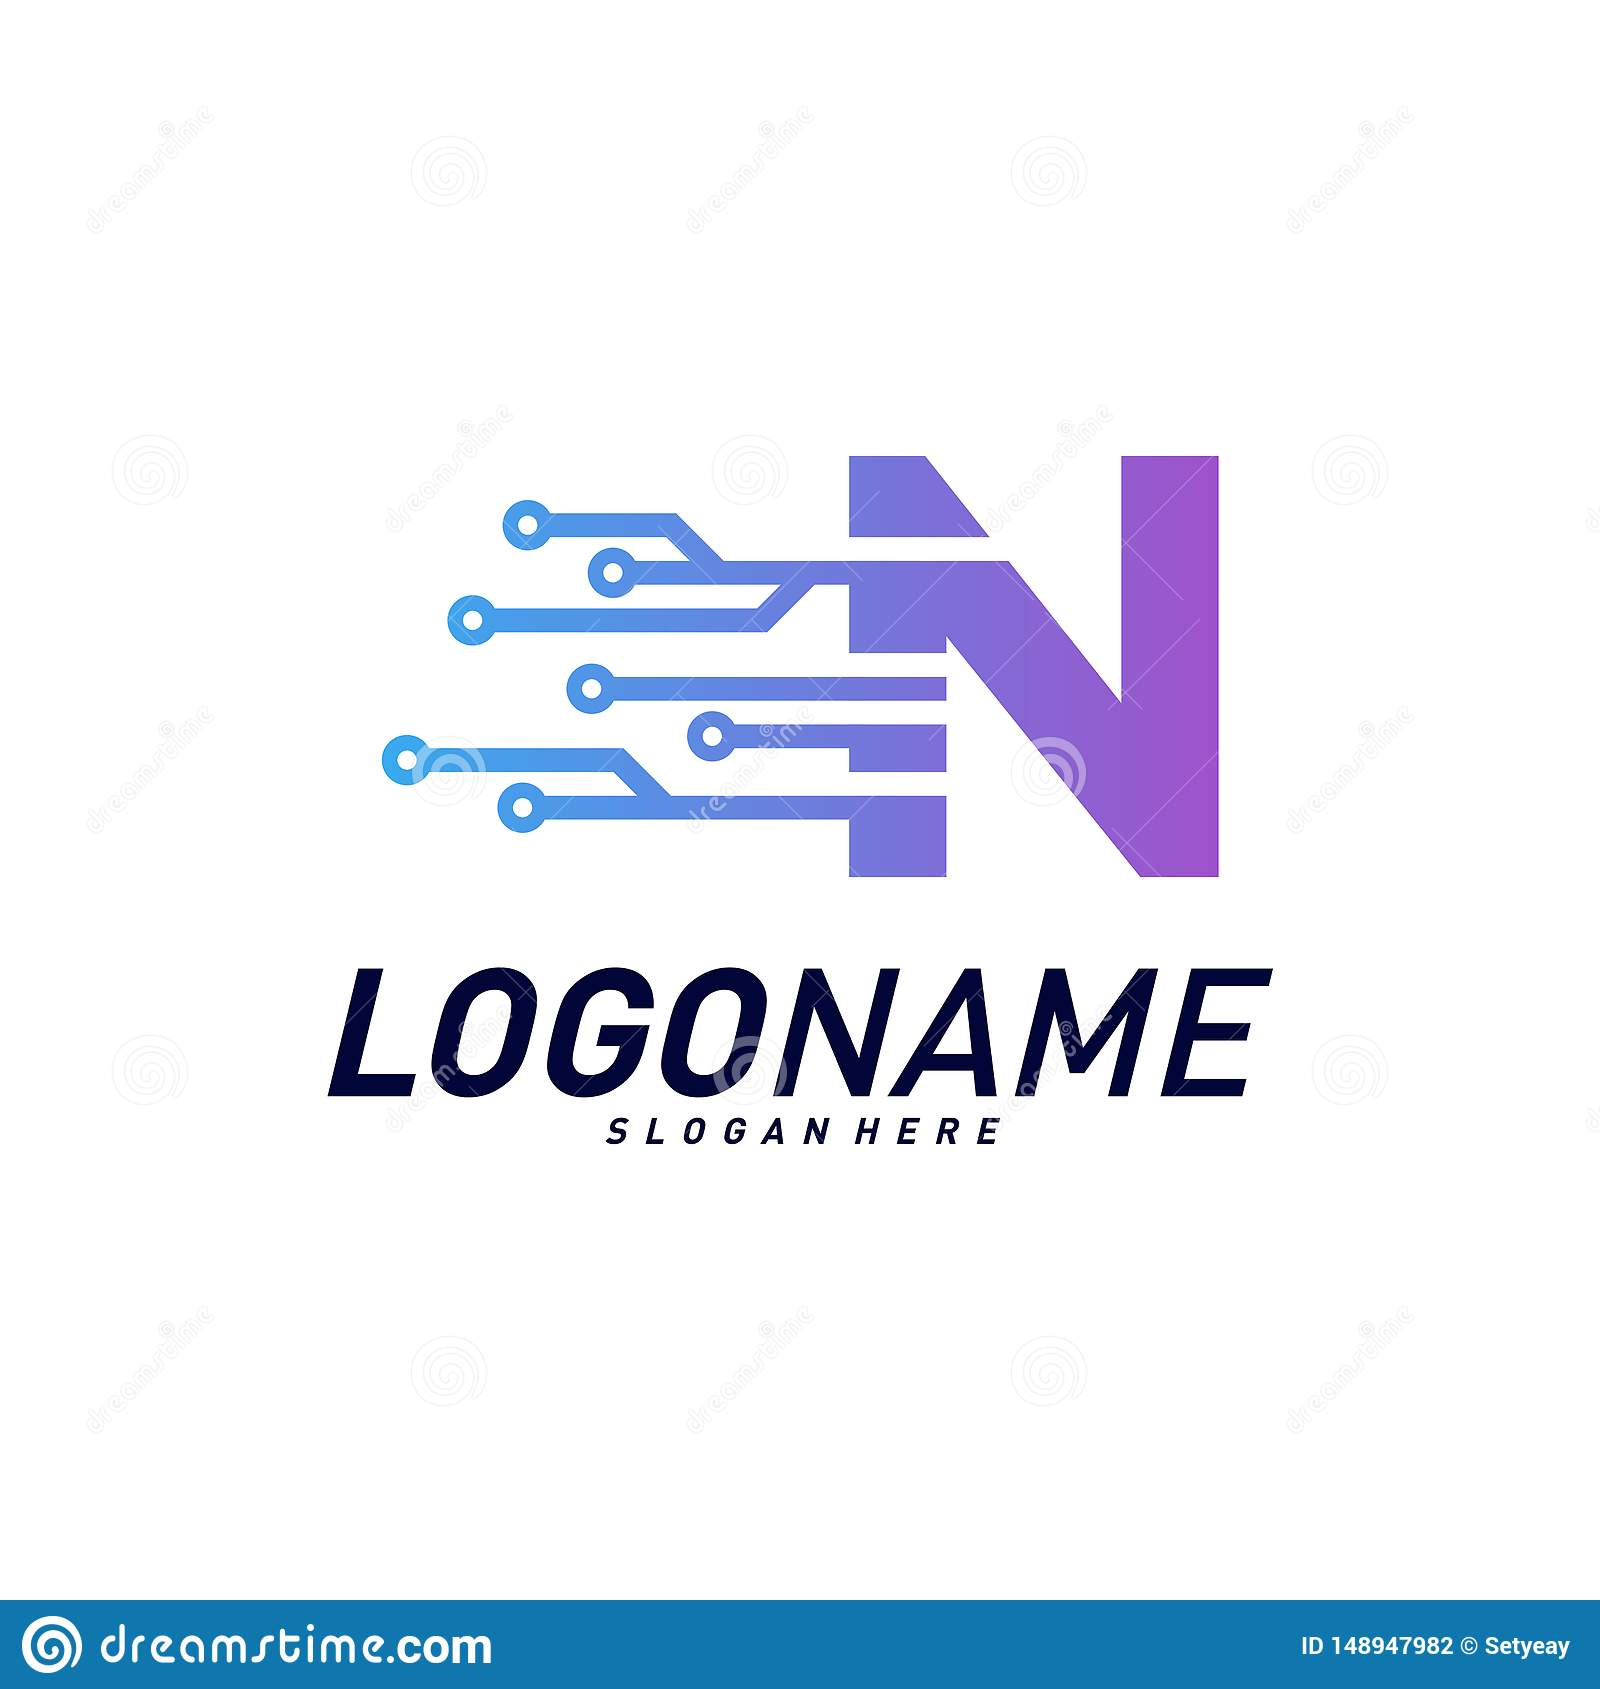 Font With Technology Logo Design Concepts Technology Letter N Logo Icon Vector Template Icon Symbol Stock Vector Illustration Of Design Graphic 148947982